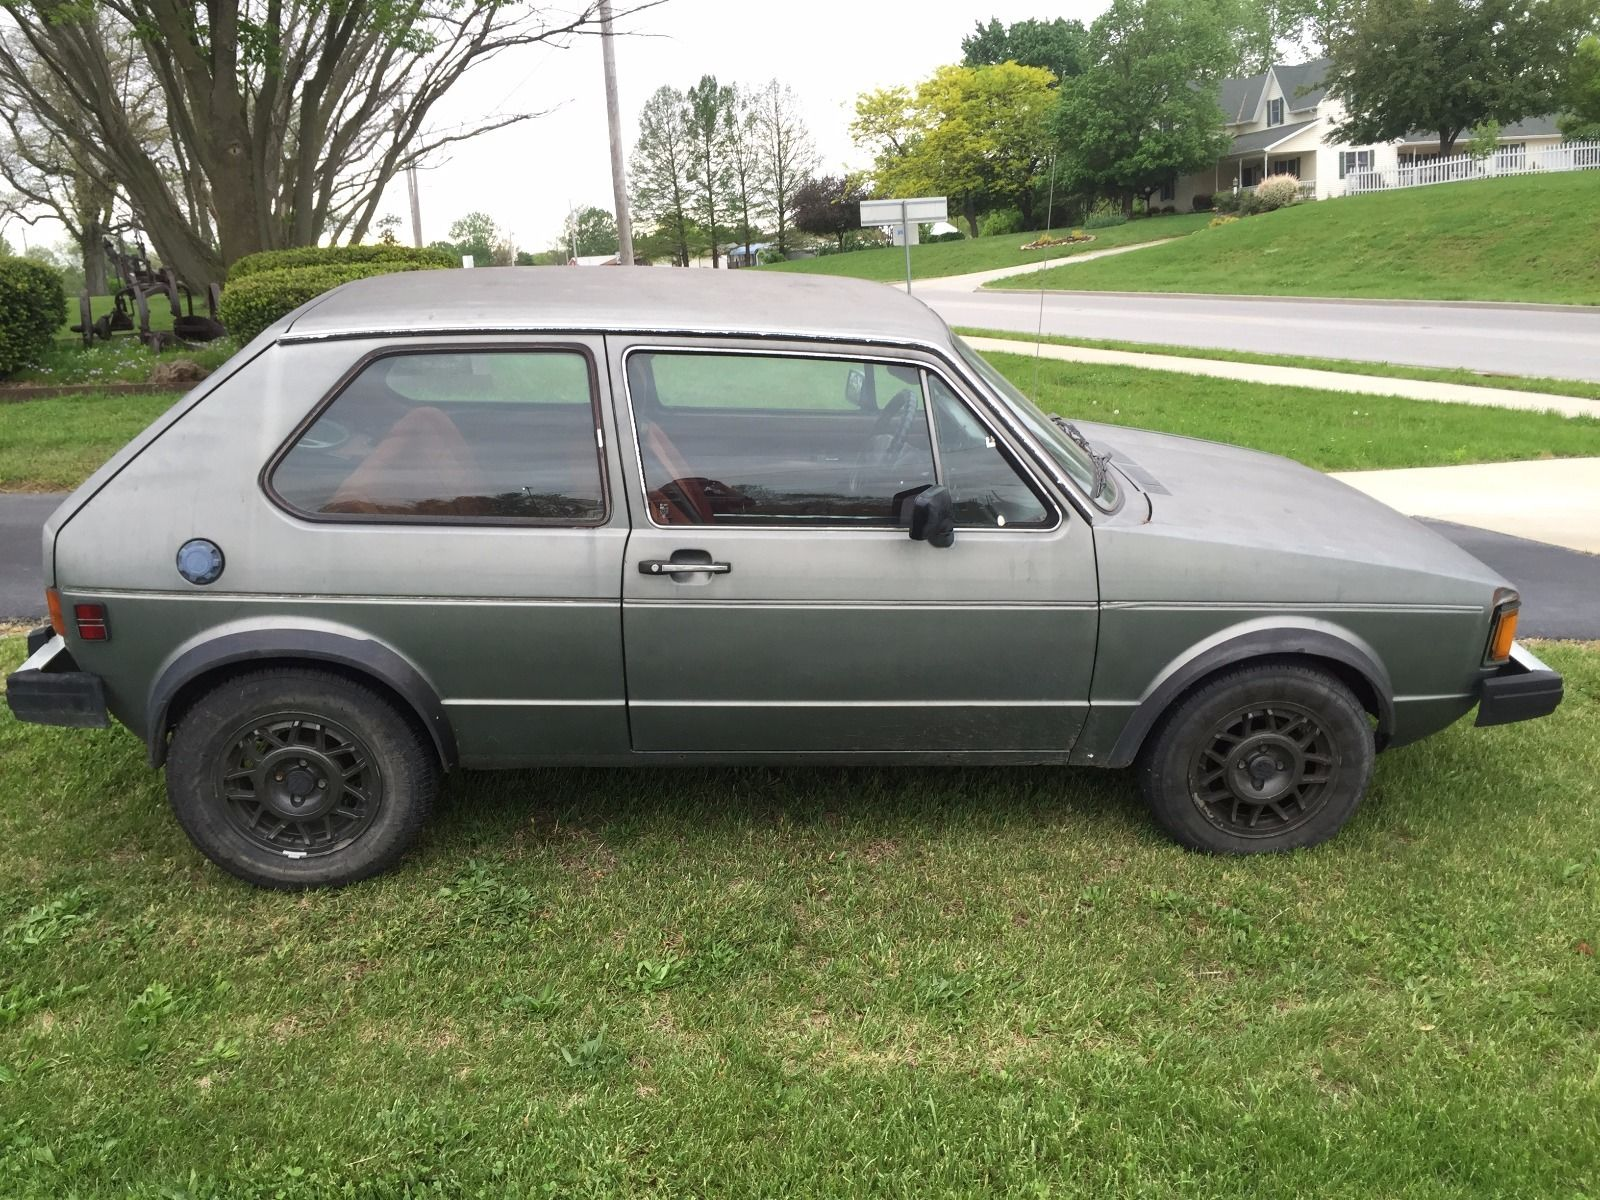 1982 Volkswagen Rabbit Project Car For Sale